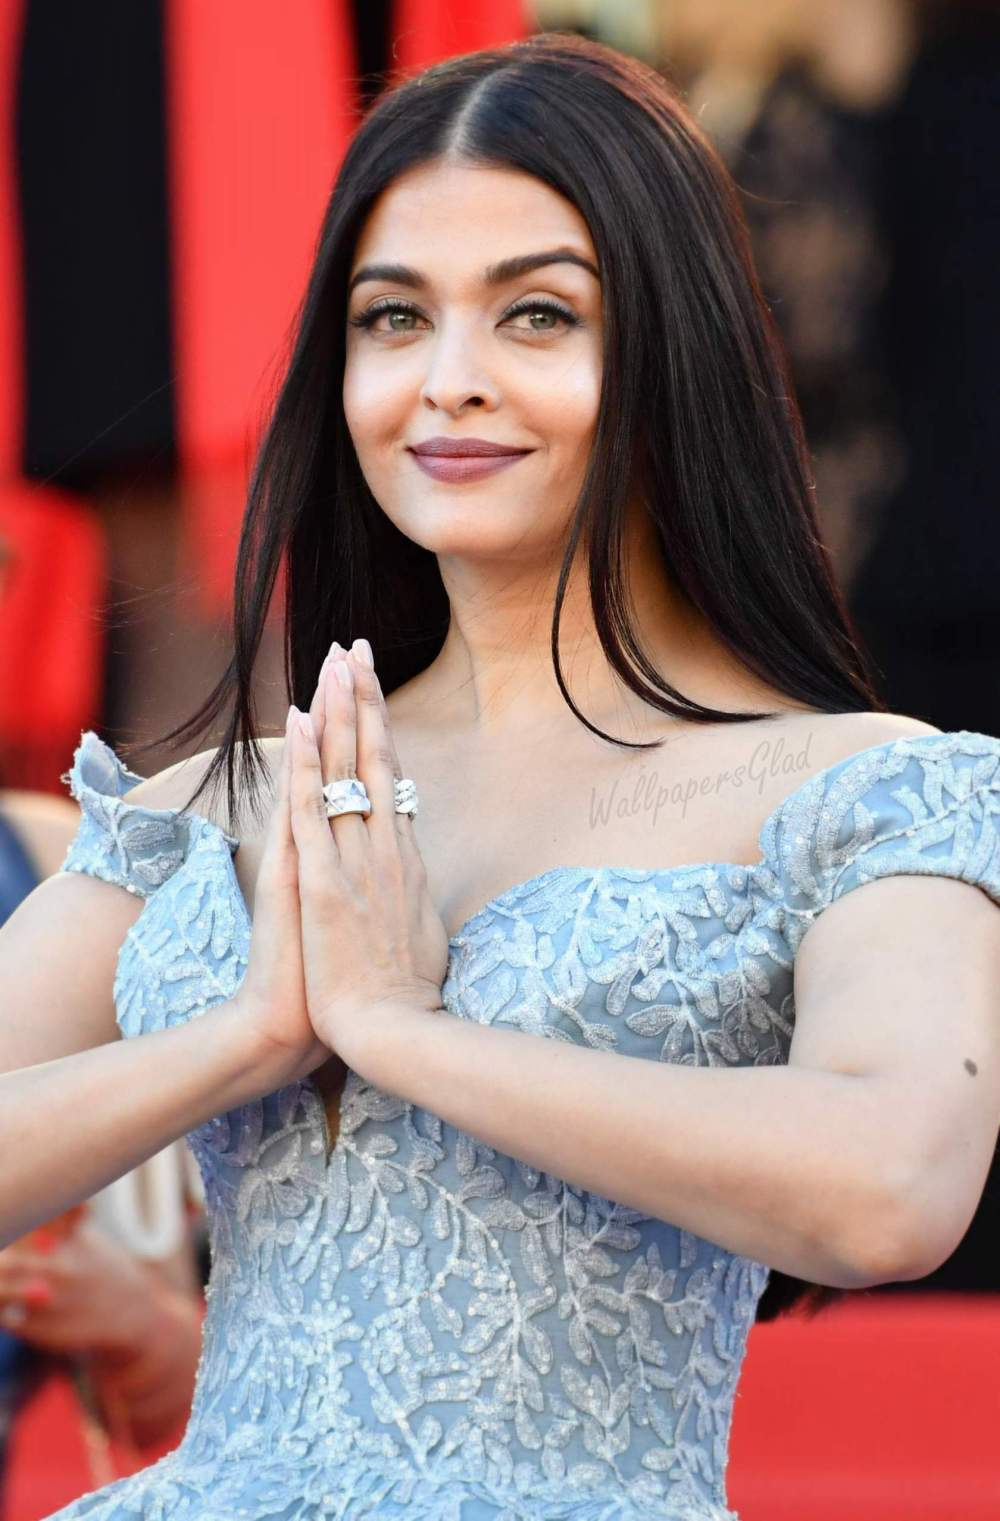 Aishwarya-Rai-Namaste-at-Festival-de-Cannes-2017-Red-Carpet-HD-Image